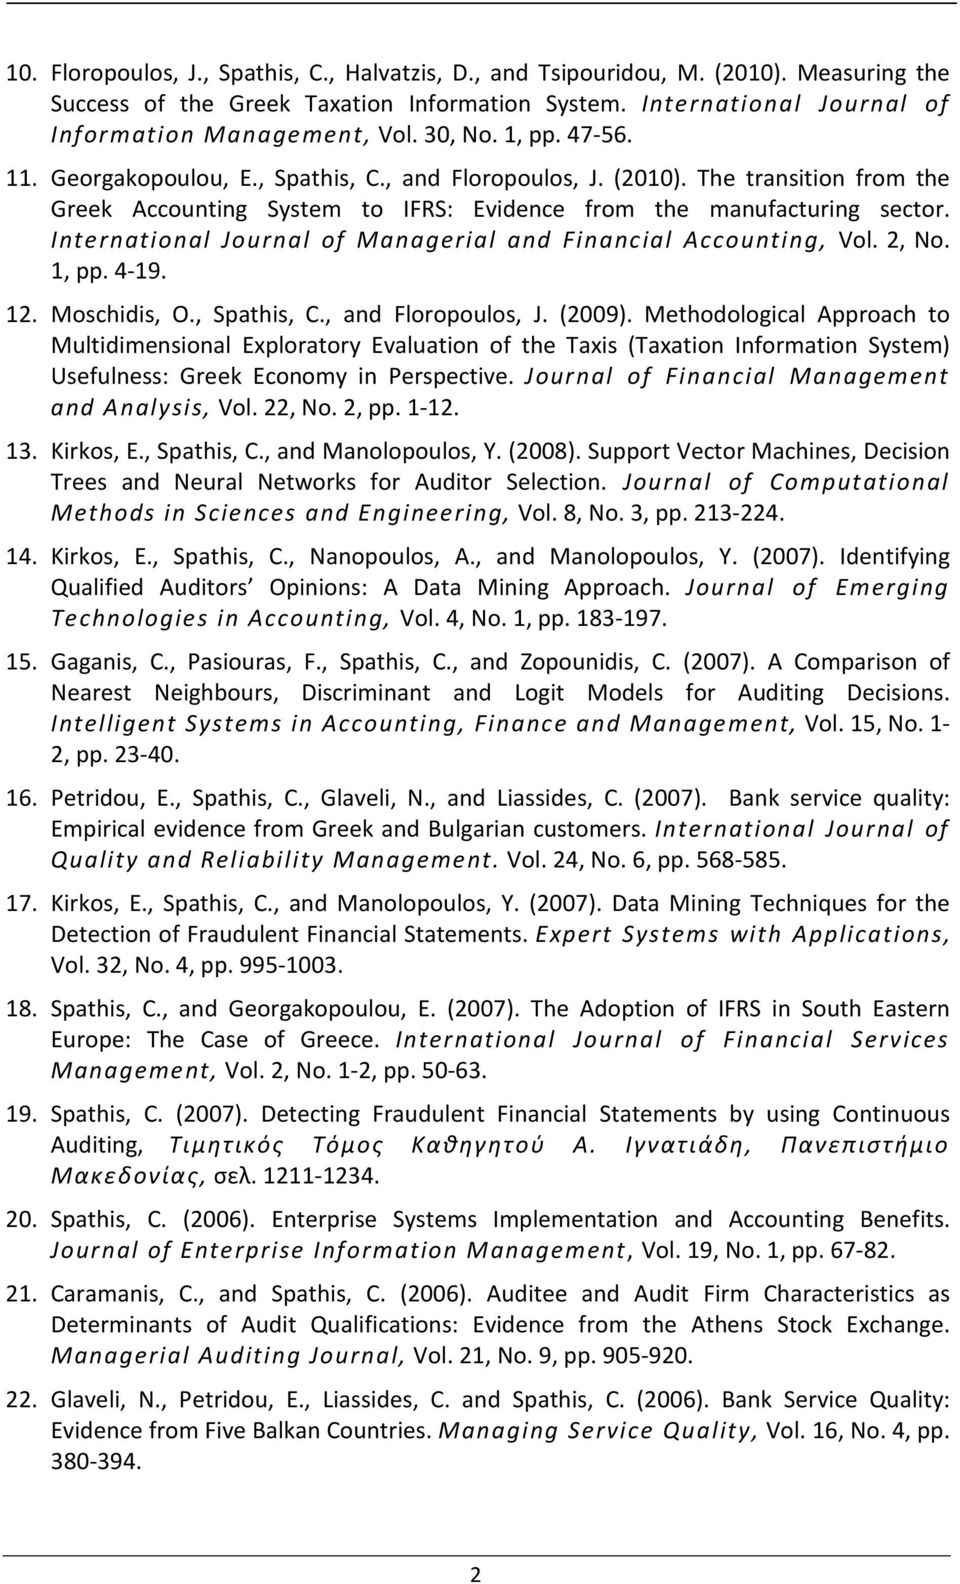 International Journal of Managerial and Financial Accounting, Vol. 2, No. 1, pp. 4-19. 12. Moschidis, O., Spathis, C., and Floropoulos, J. (2009).